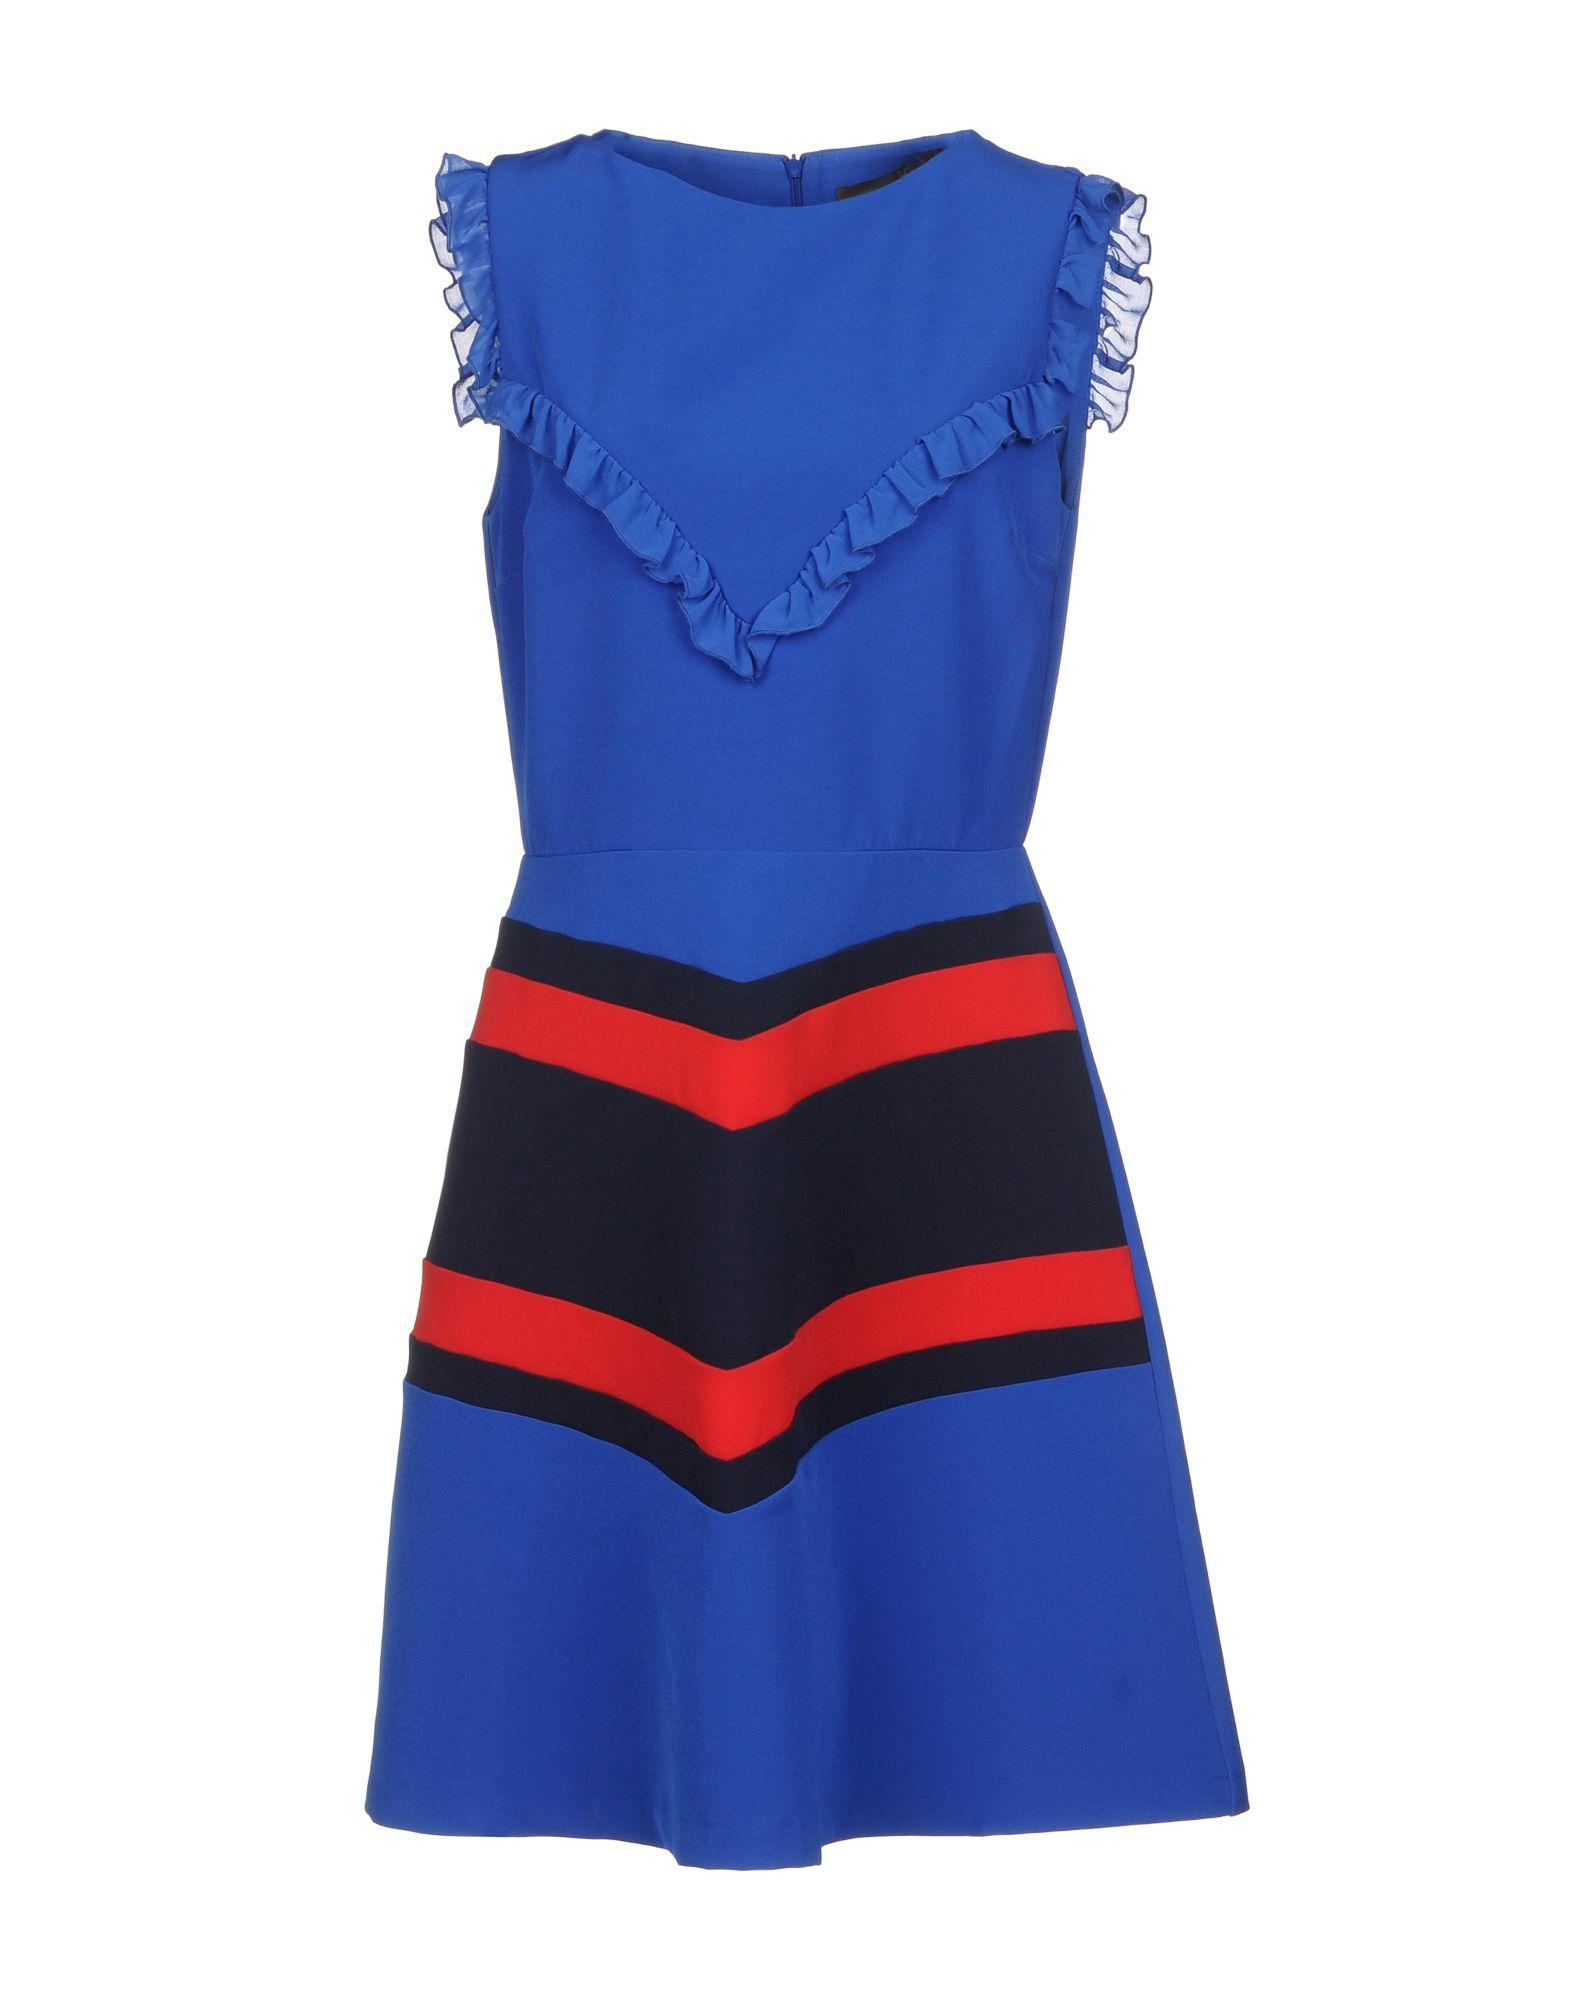 Space Style Concept Short Dress In Bright Blue